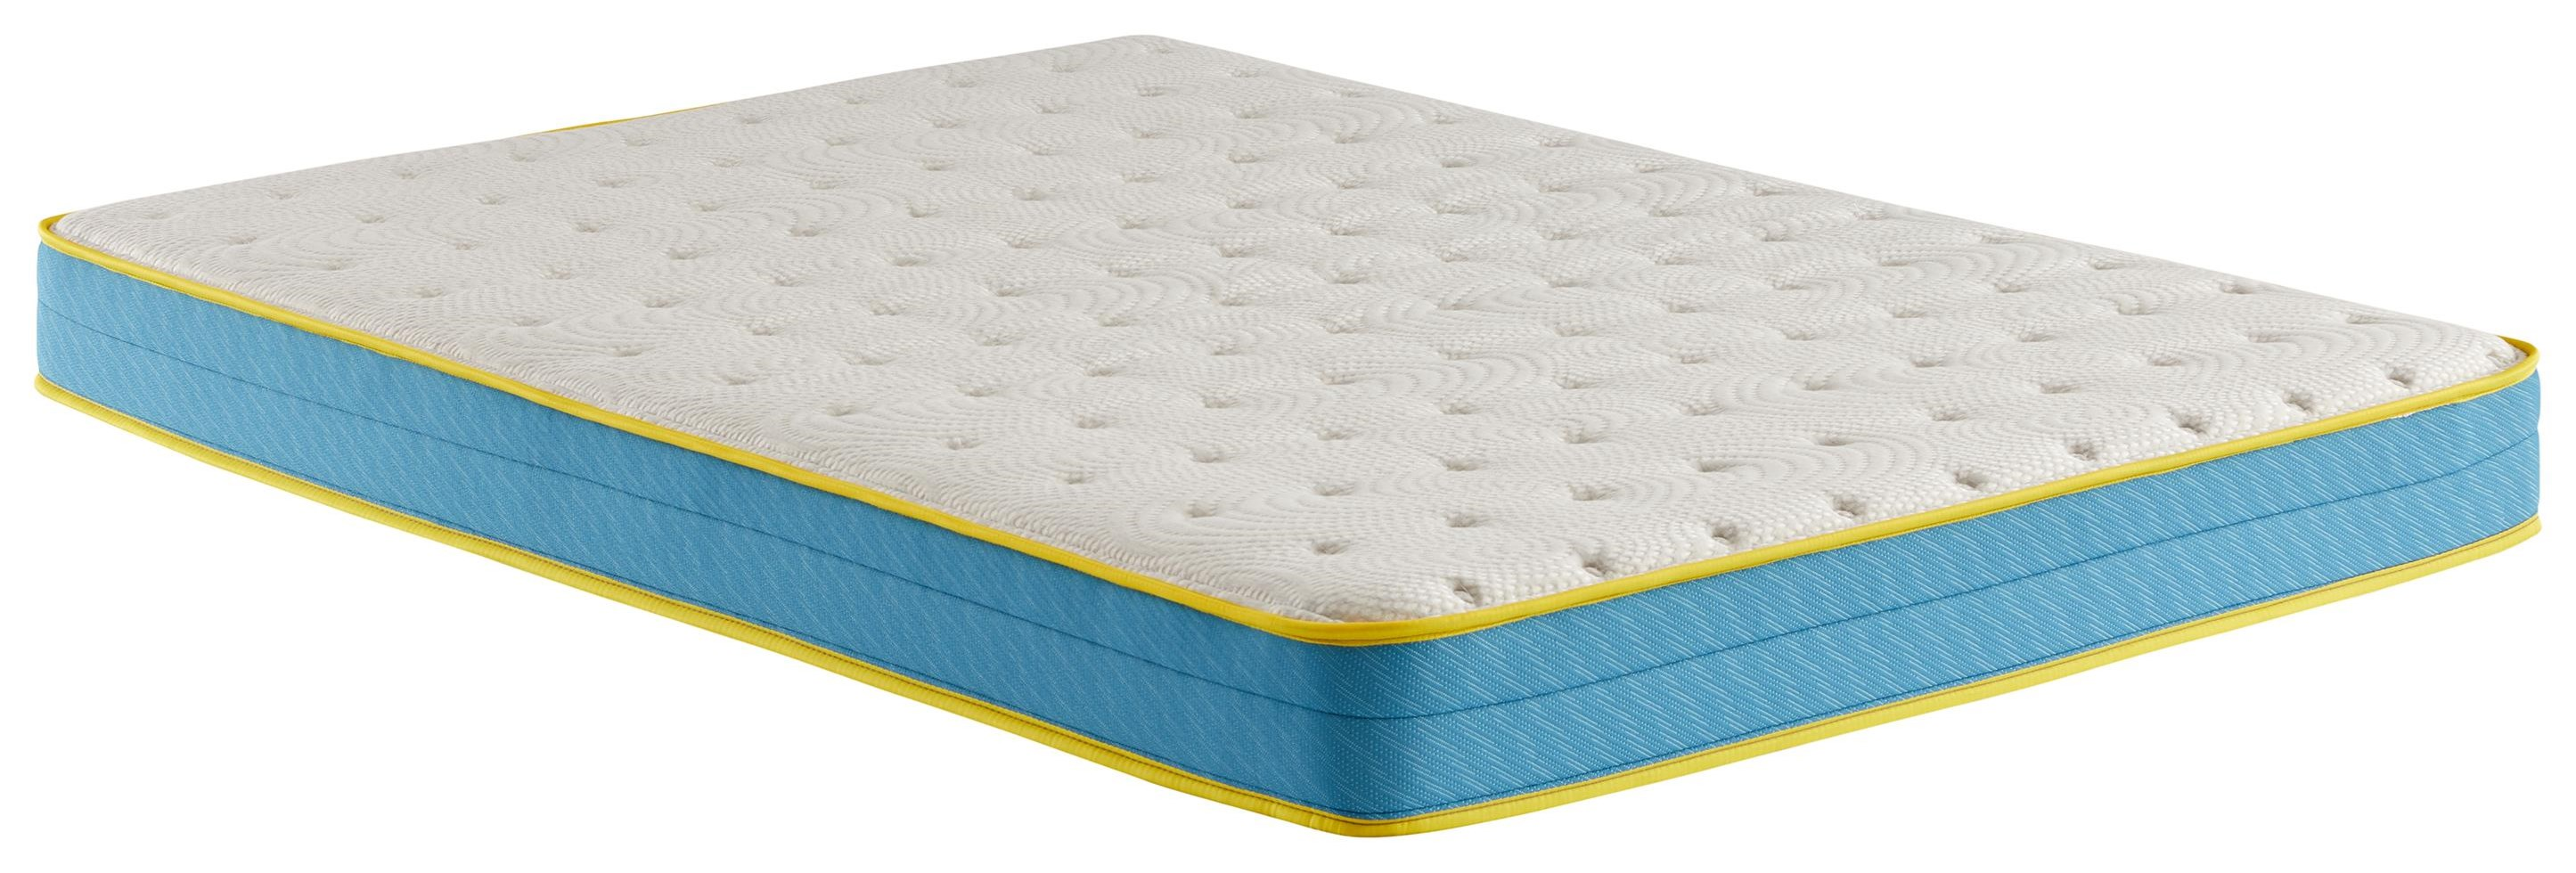 "Fairytale Town 6"" King Comfort Foam Mattress by Corsicana at Beck's Furniture"